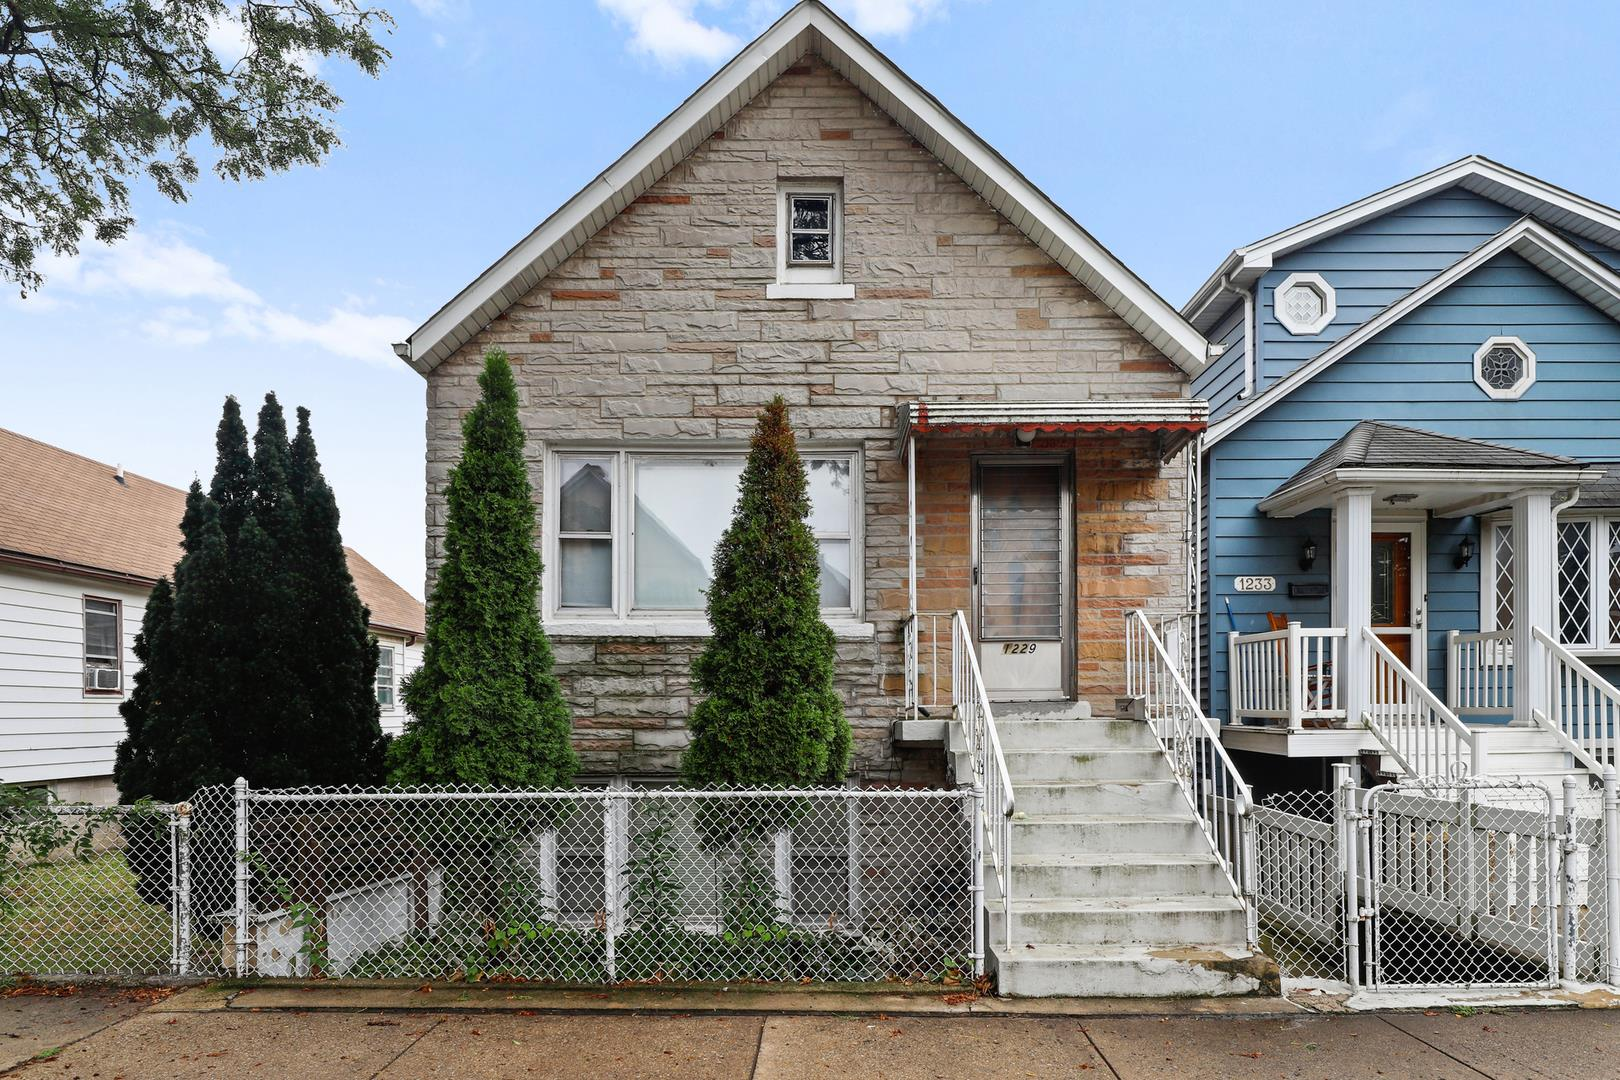 1229 W 32nd Place, Chicago, IL 60608 - #: 10783194